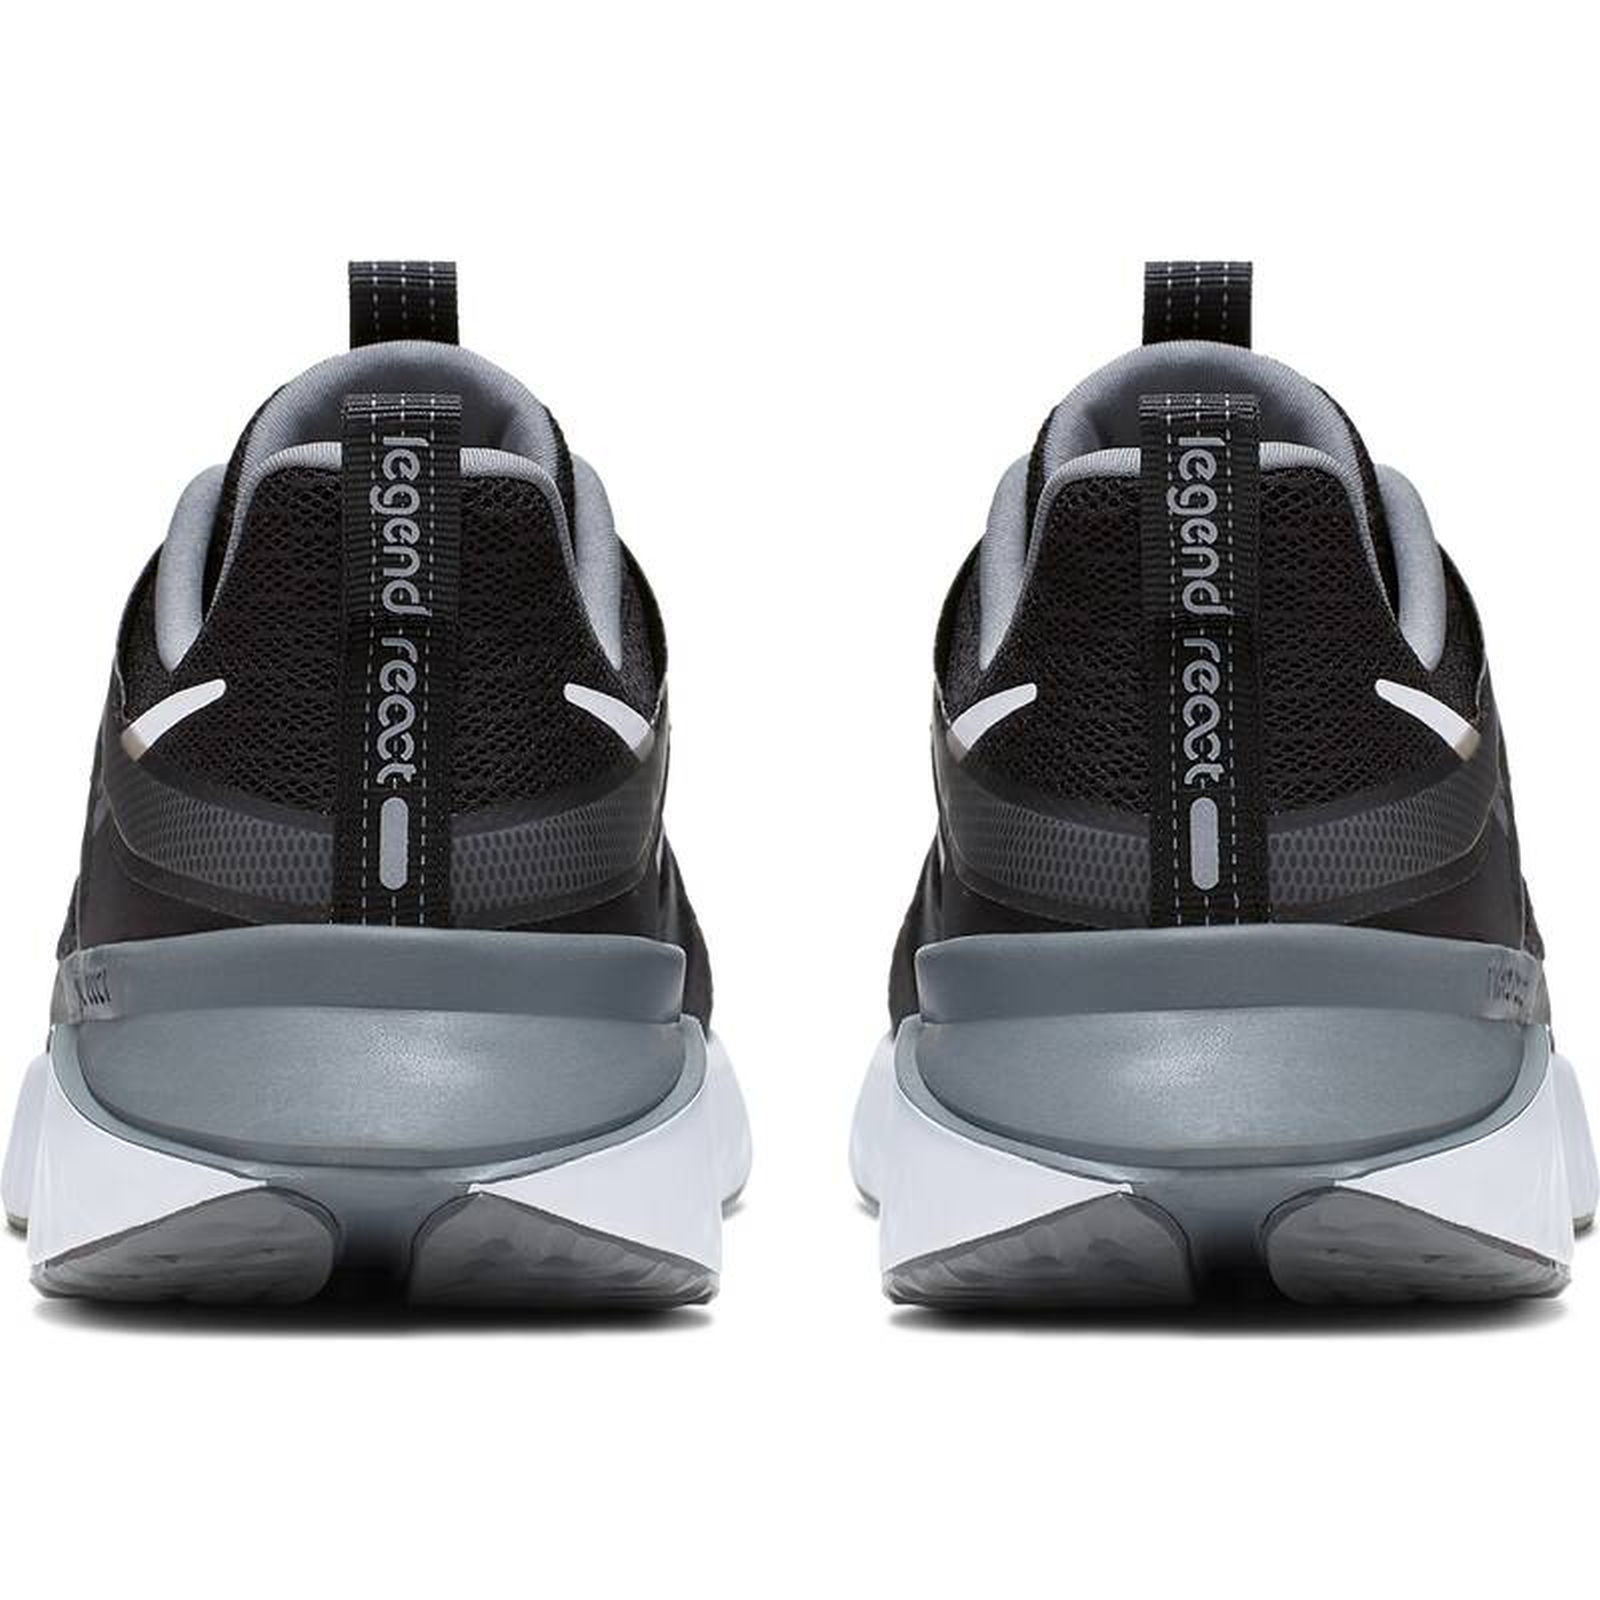 Details about Nike Men's Running Shoes Casual Shoes Nike Nike Legend React 2 Black White Grey